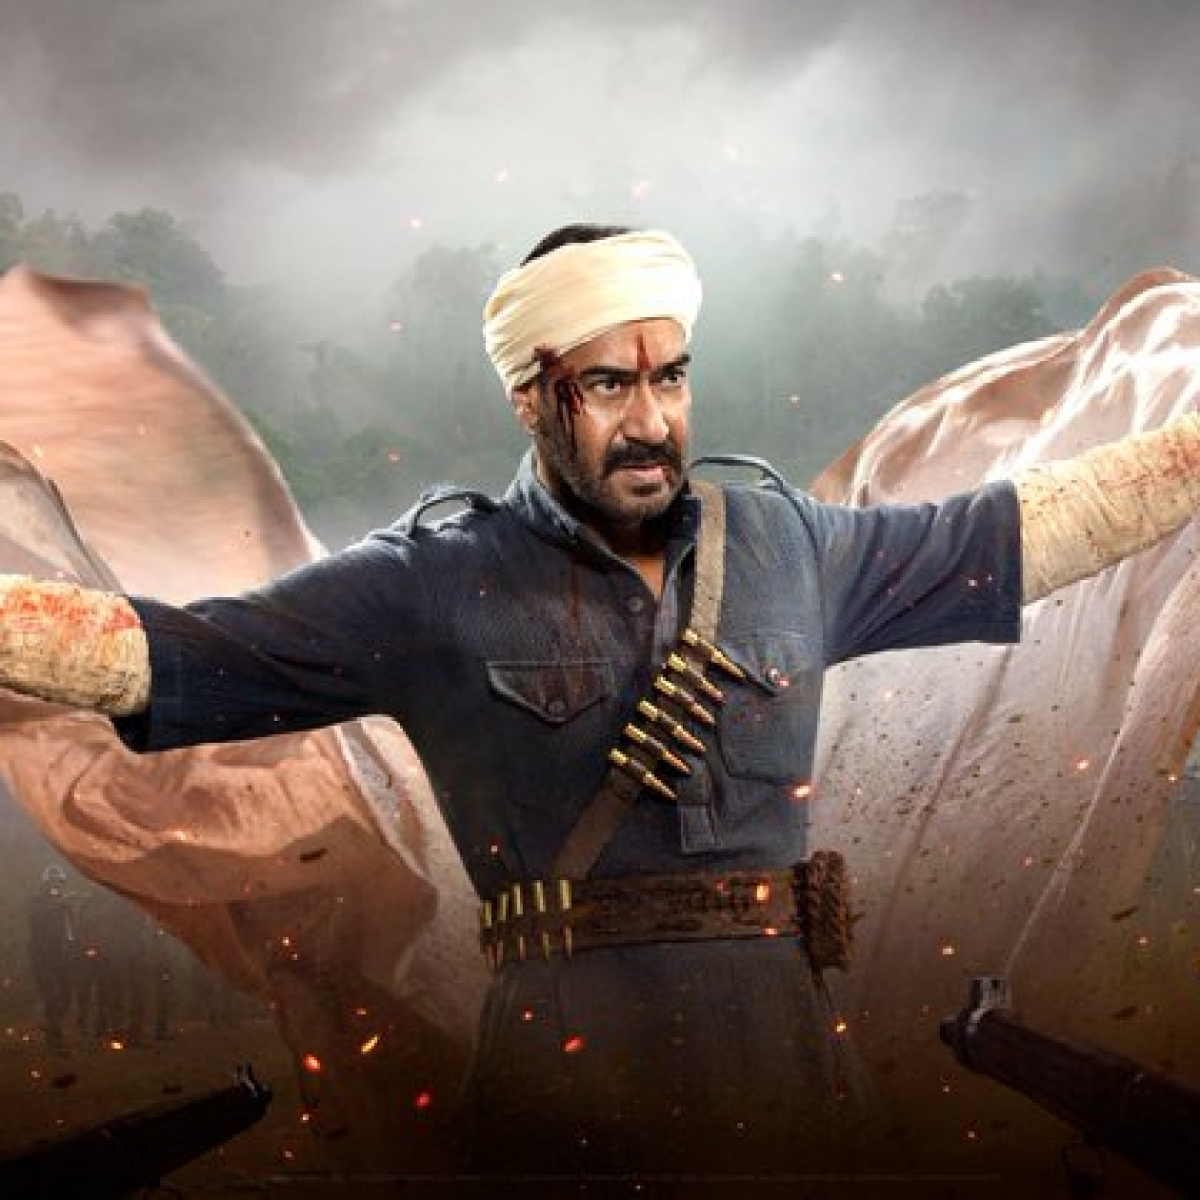 Makers of 'RRR' drop powerful motion poster featuring Ajay Devgn on his birthday